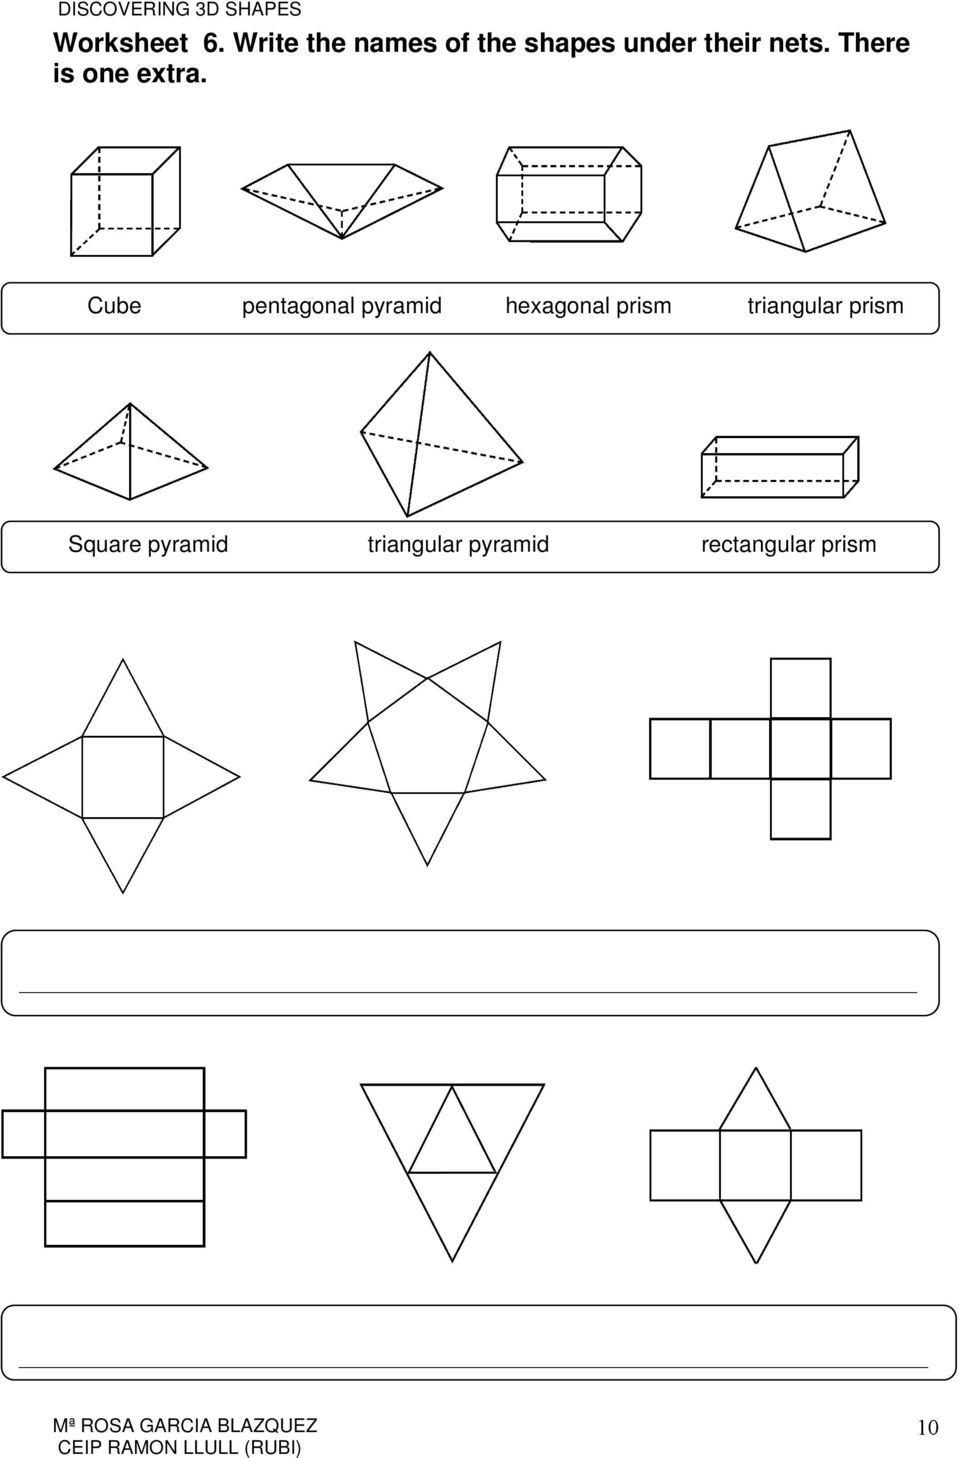 hight resolution of DISCOVERING 3D SHAPES - PDF Free Download